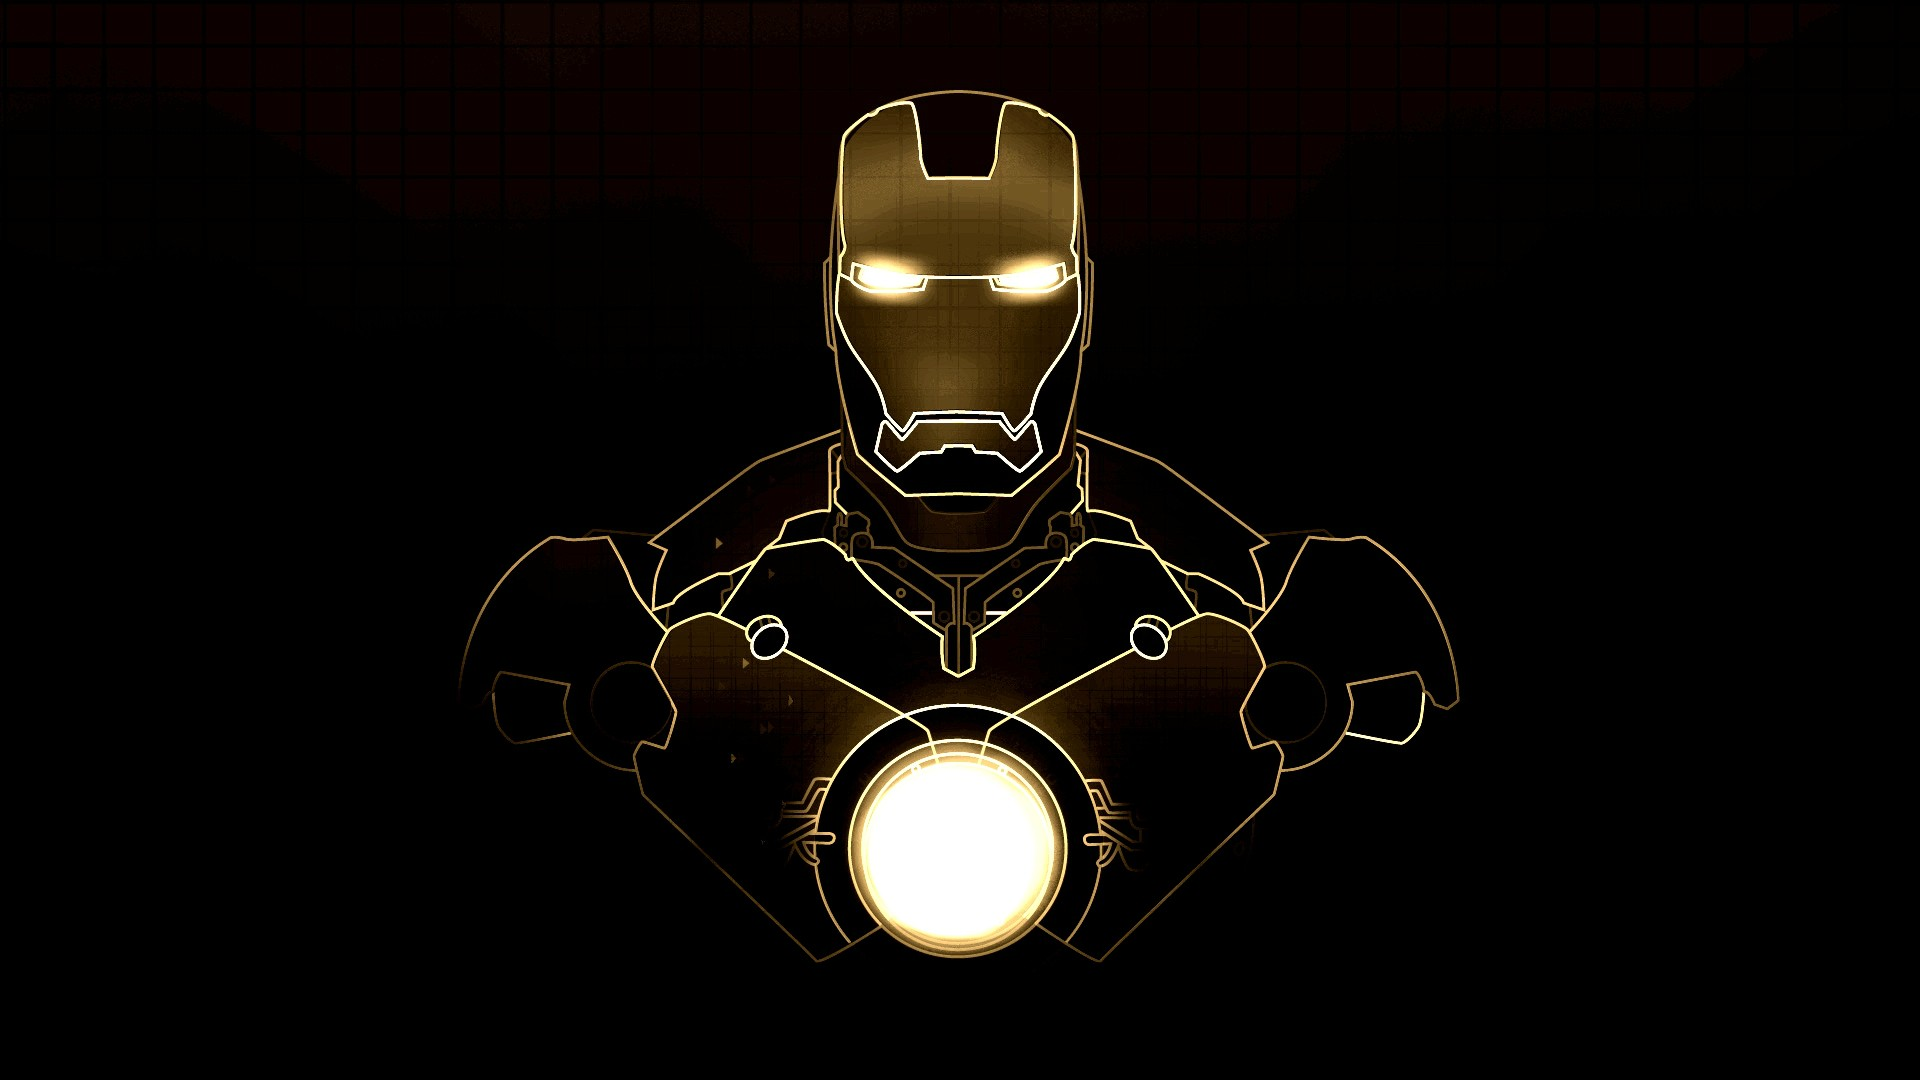 149 iron man hd wallpapers | background images - wallpaper abyss